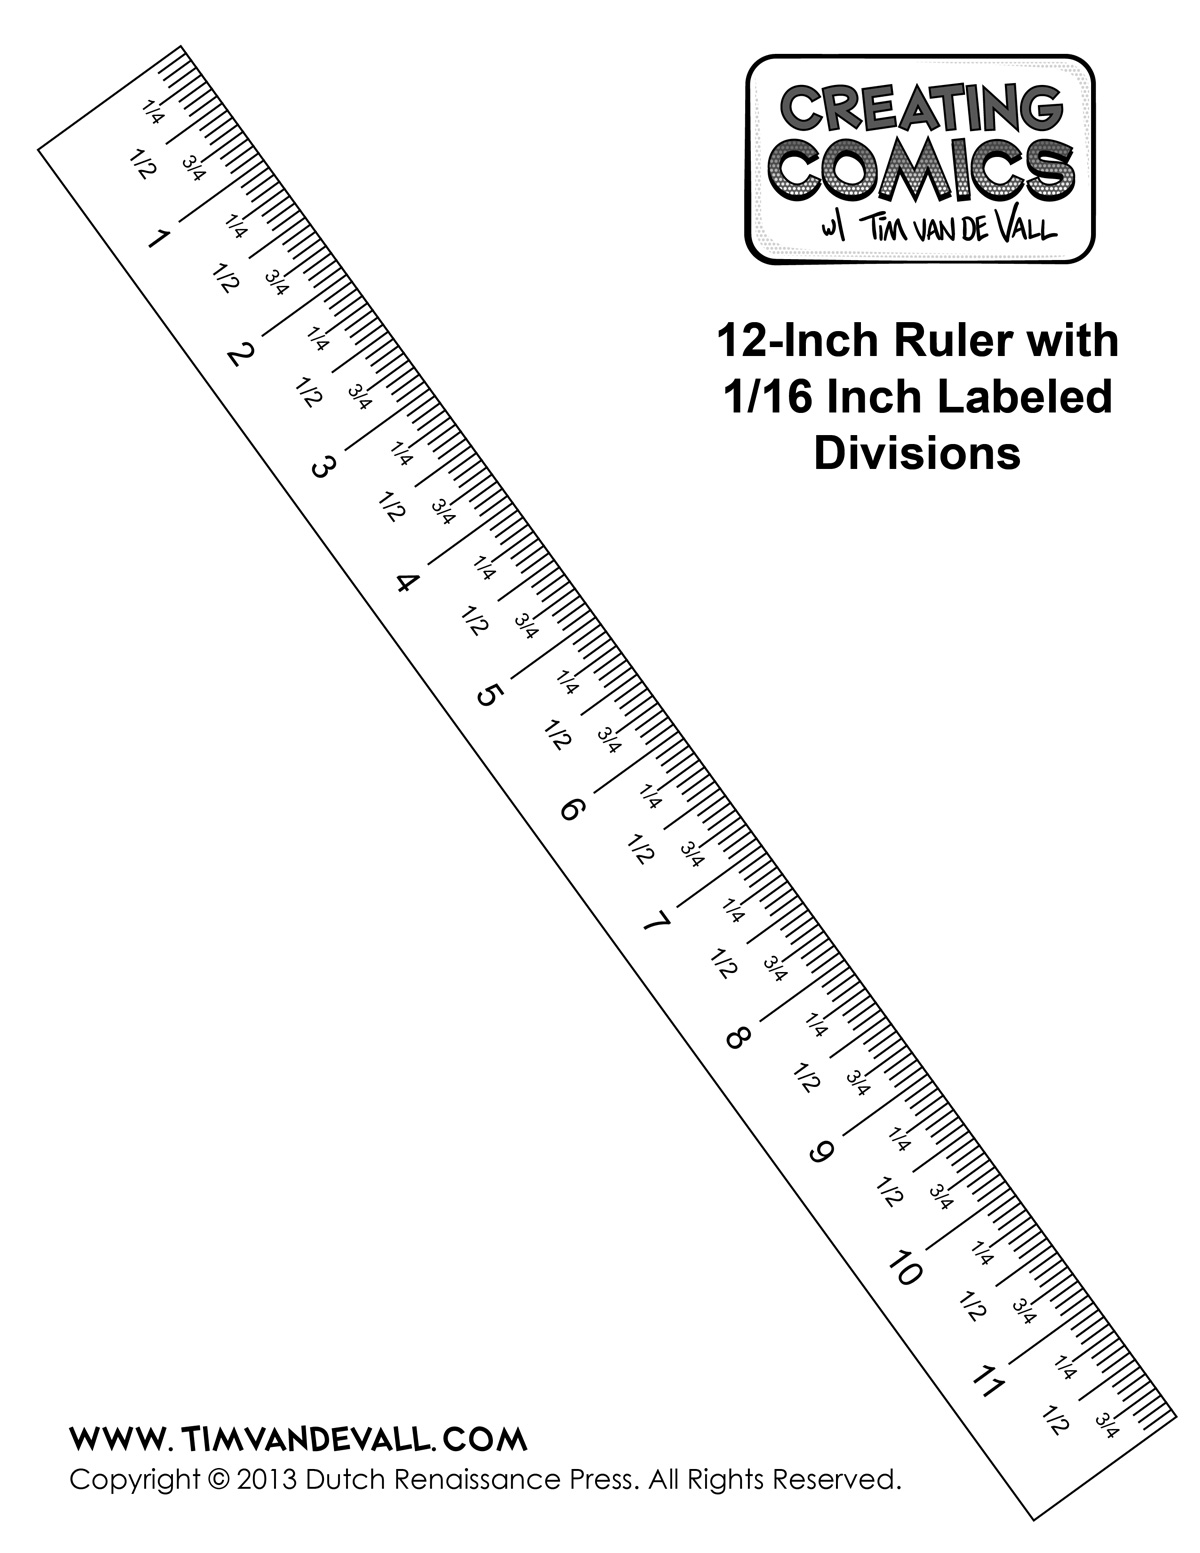 Free Download Program Template Of A Ruler In Centimeters